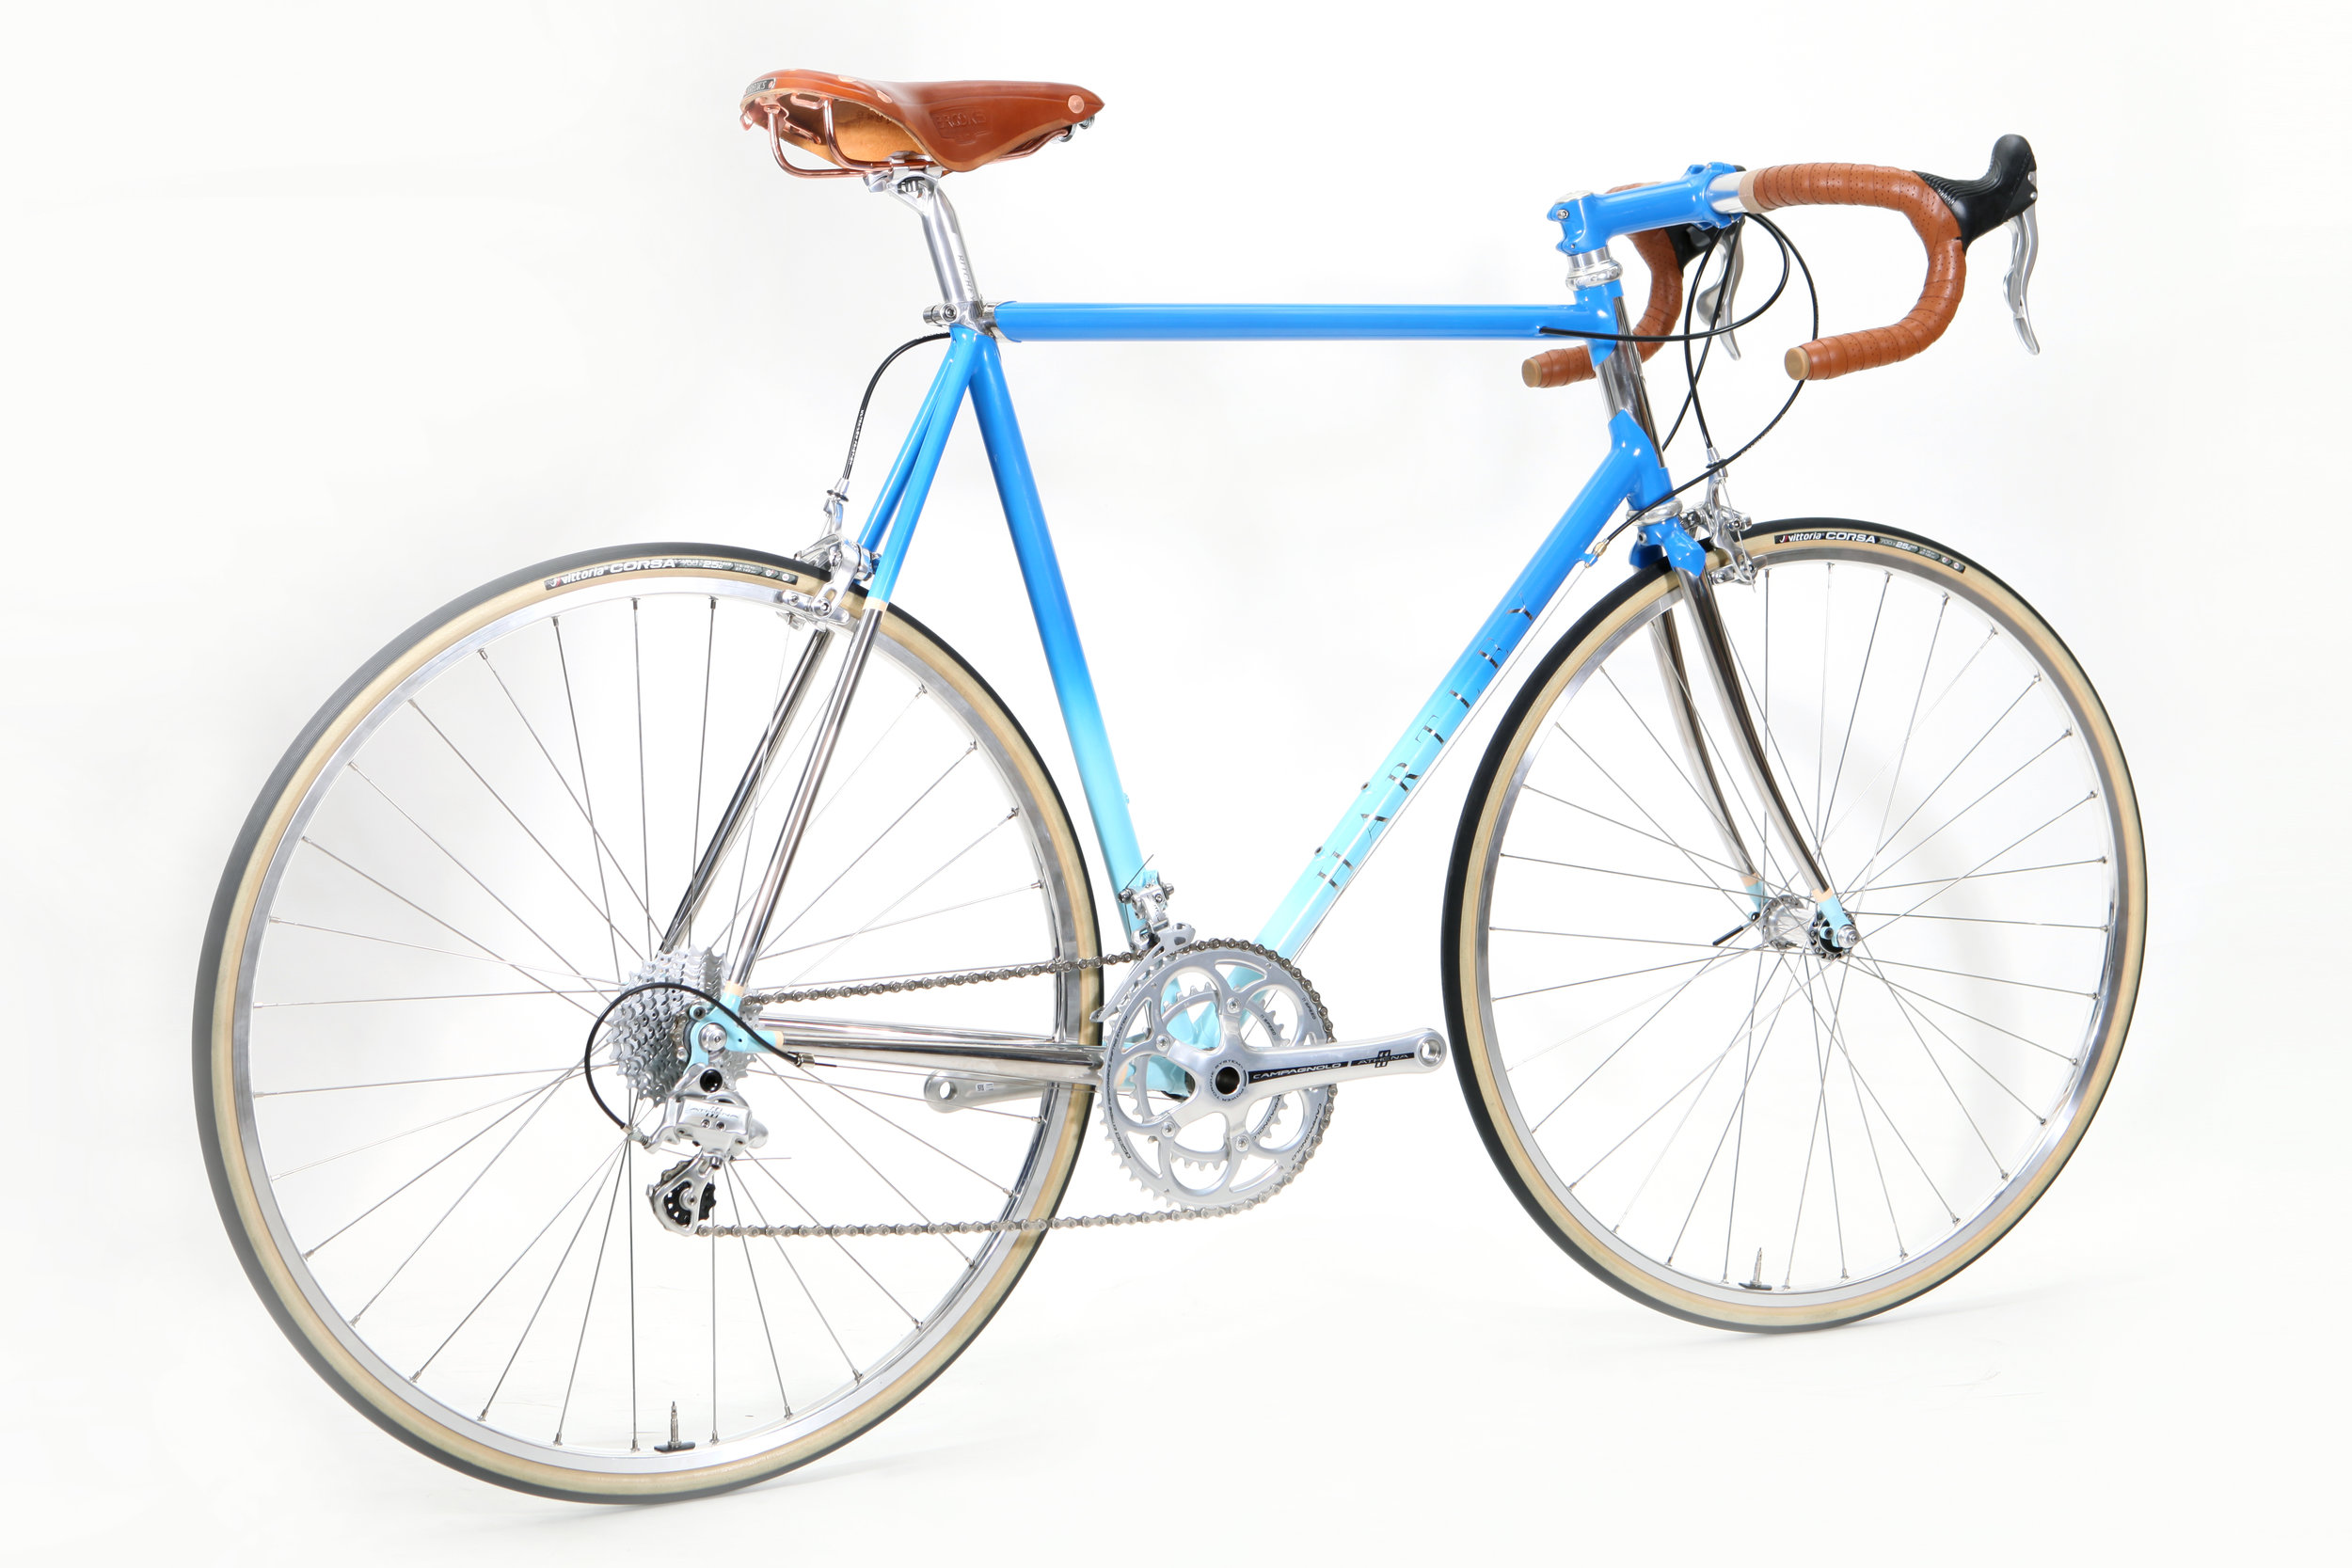 Modern Classic Lugged Stainless Steel Bespoke Bicycle, Reynolds 953